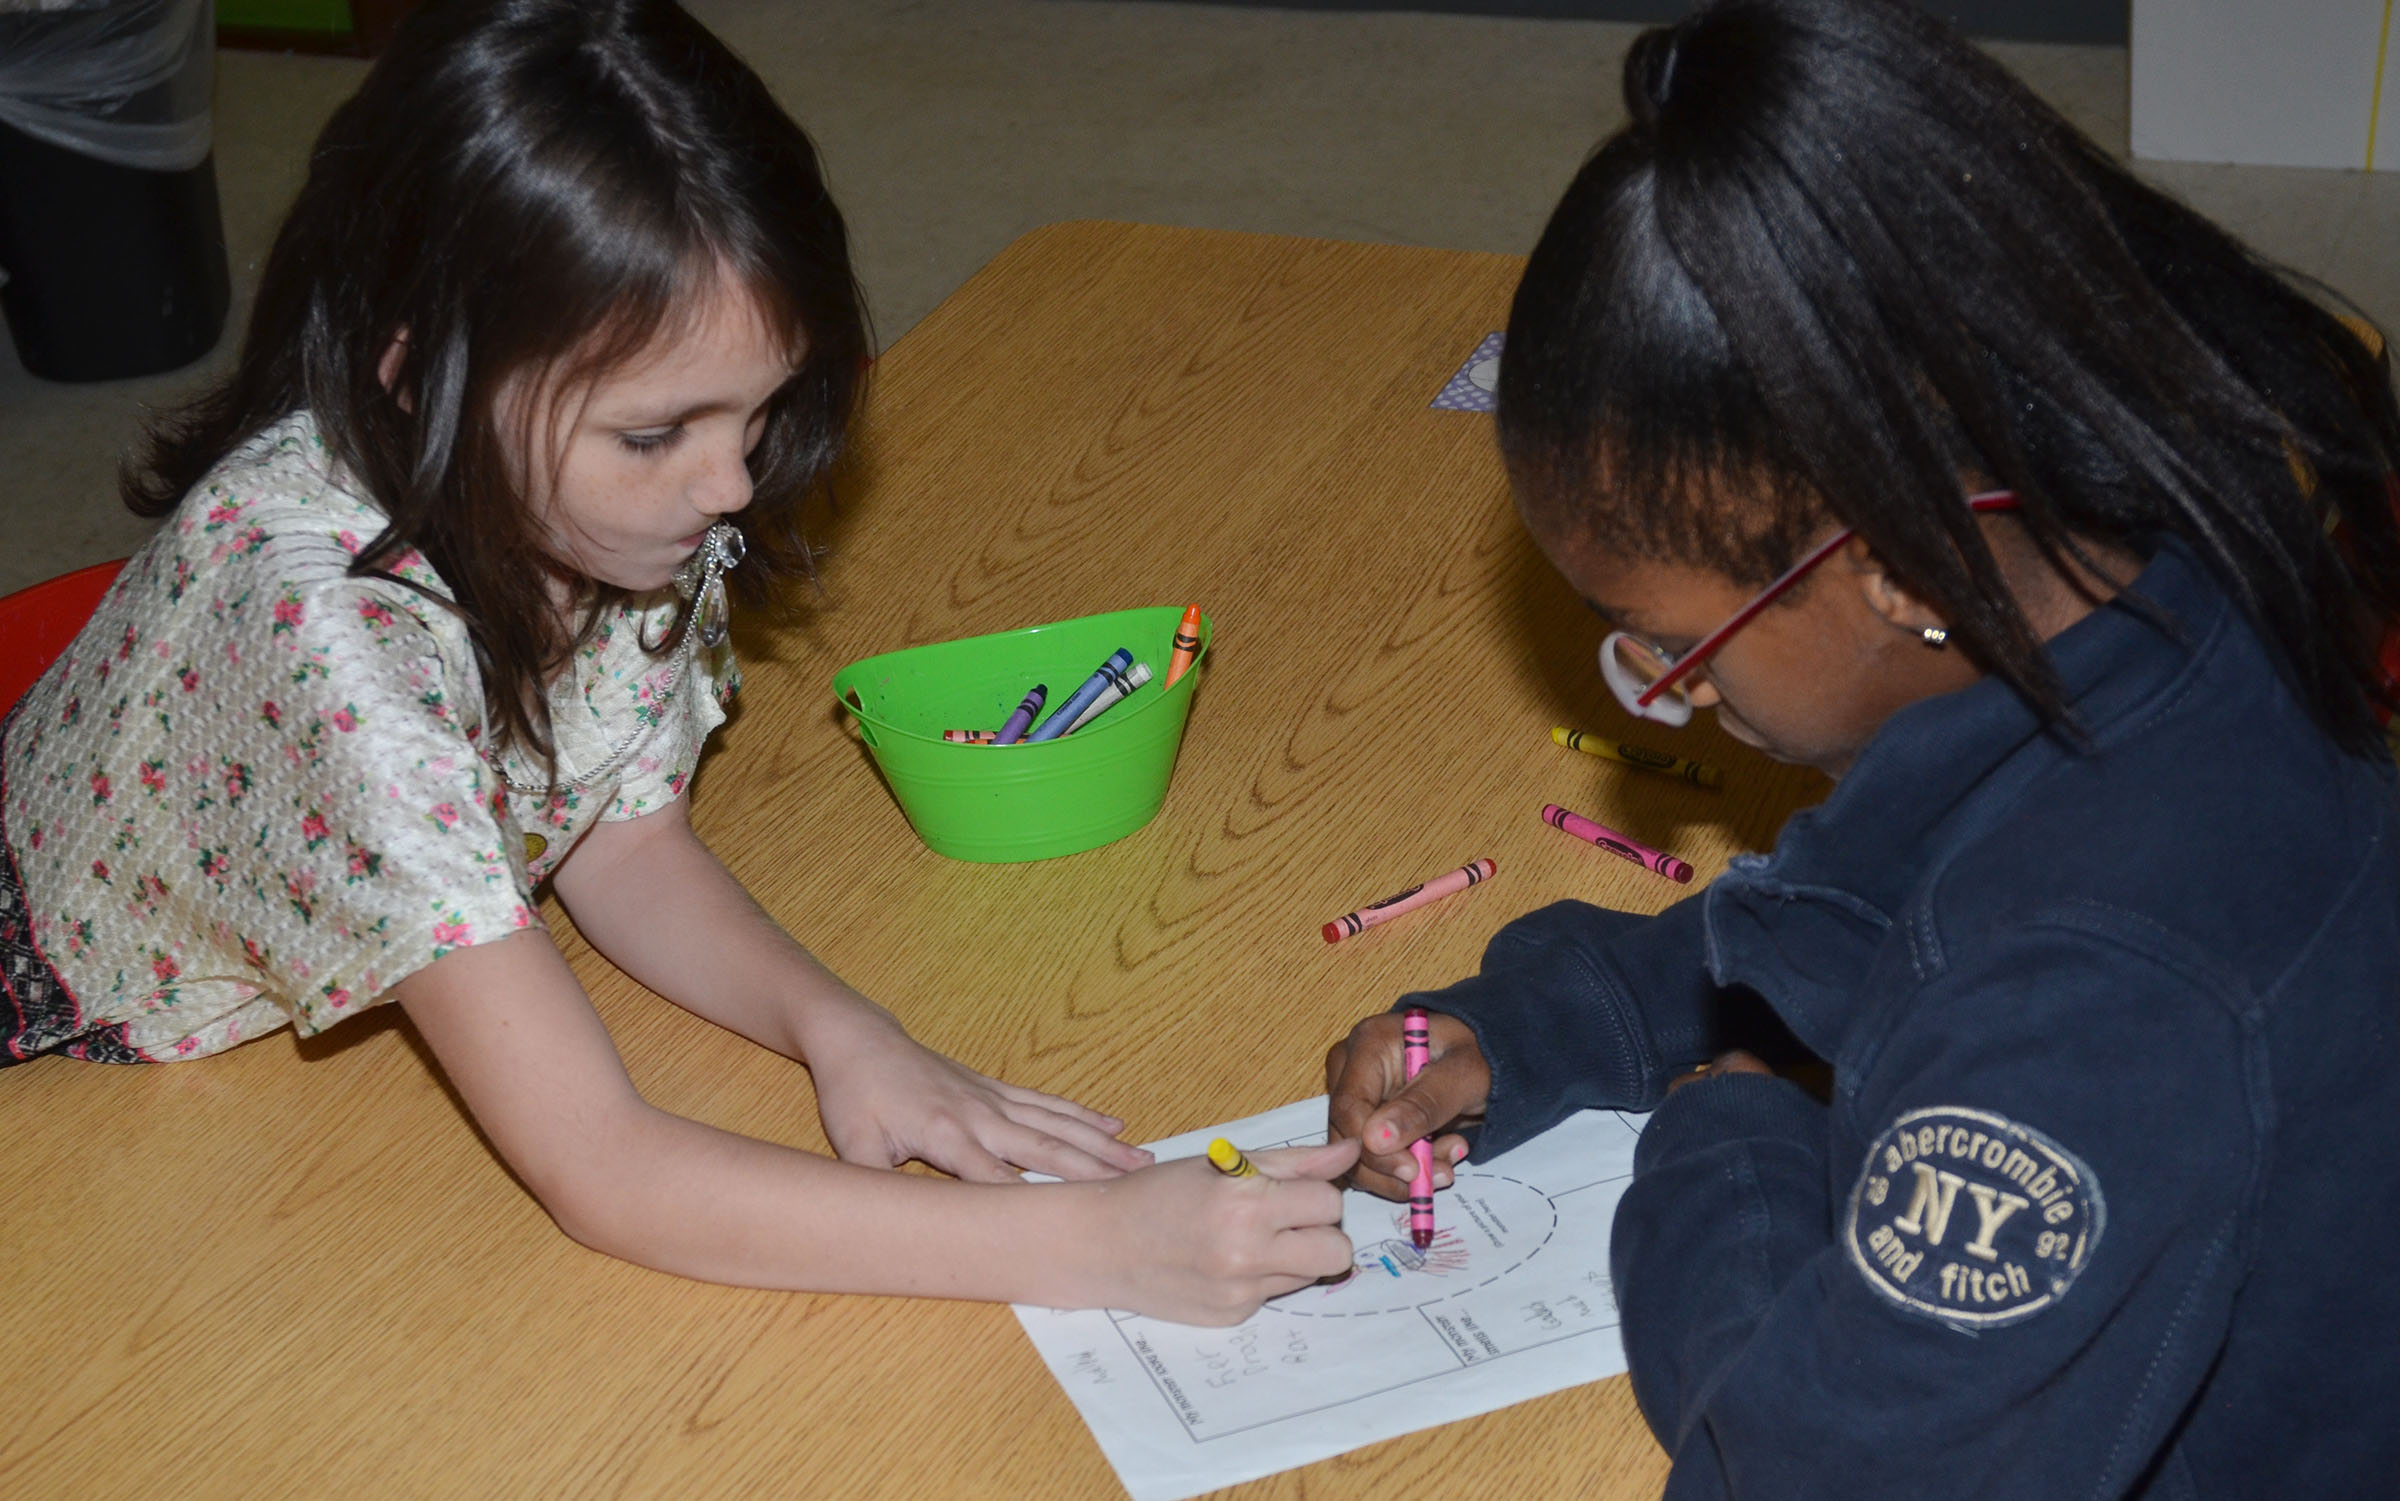 CES third-graders Paige Ritchie, at left, and Maliyah Harris put finishing touches on the drawing of their monster.